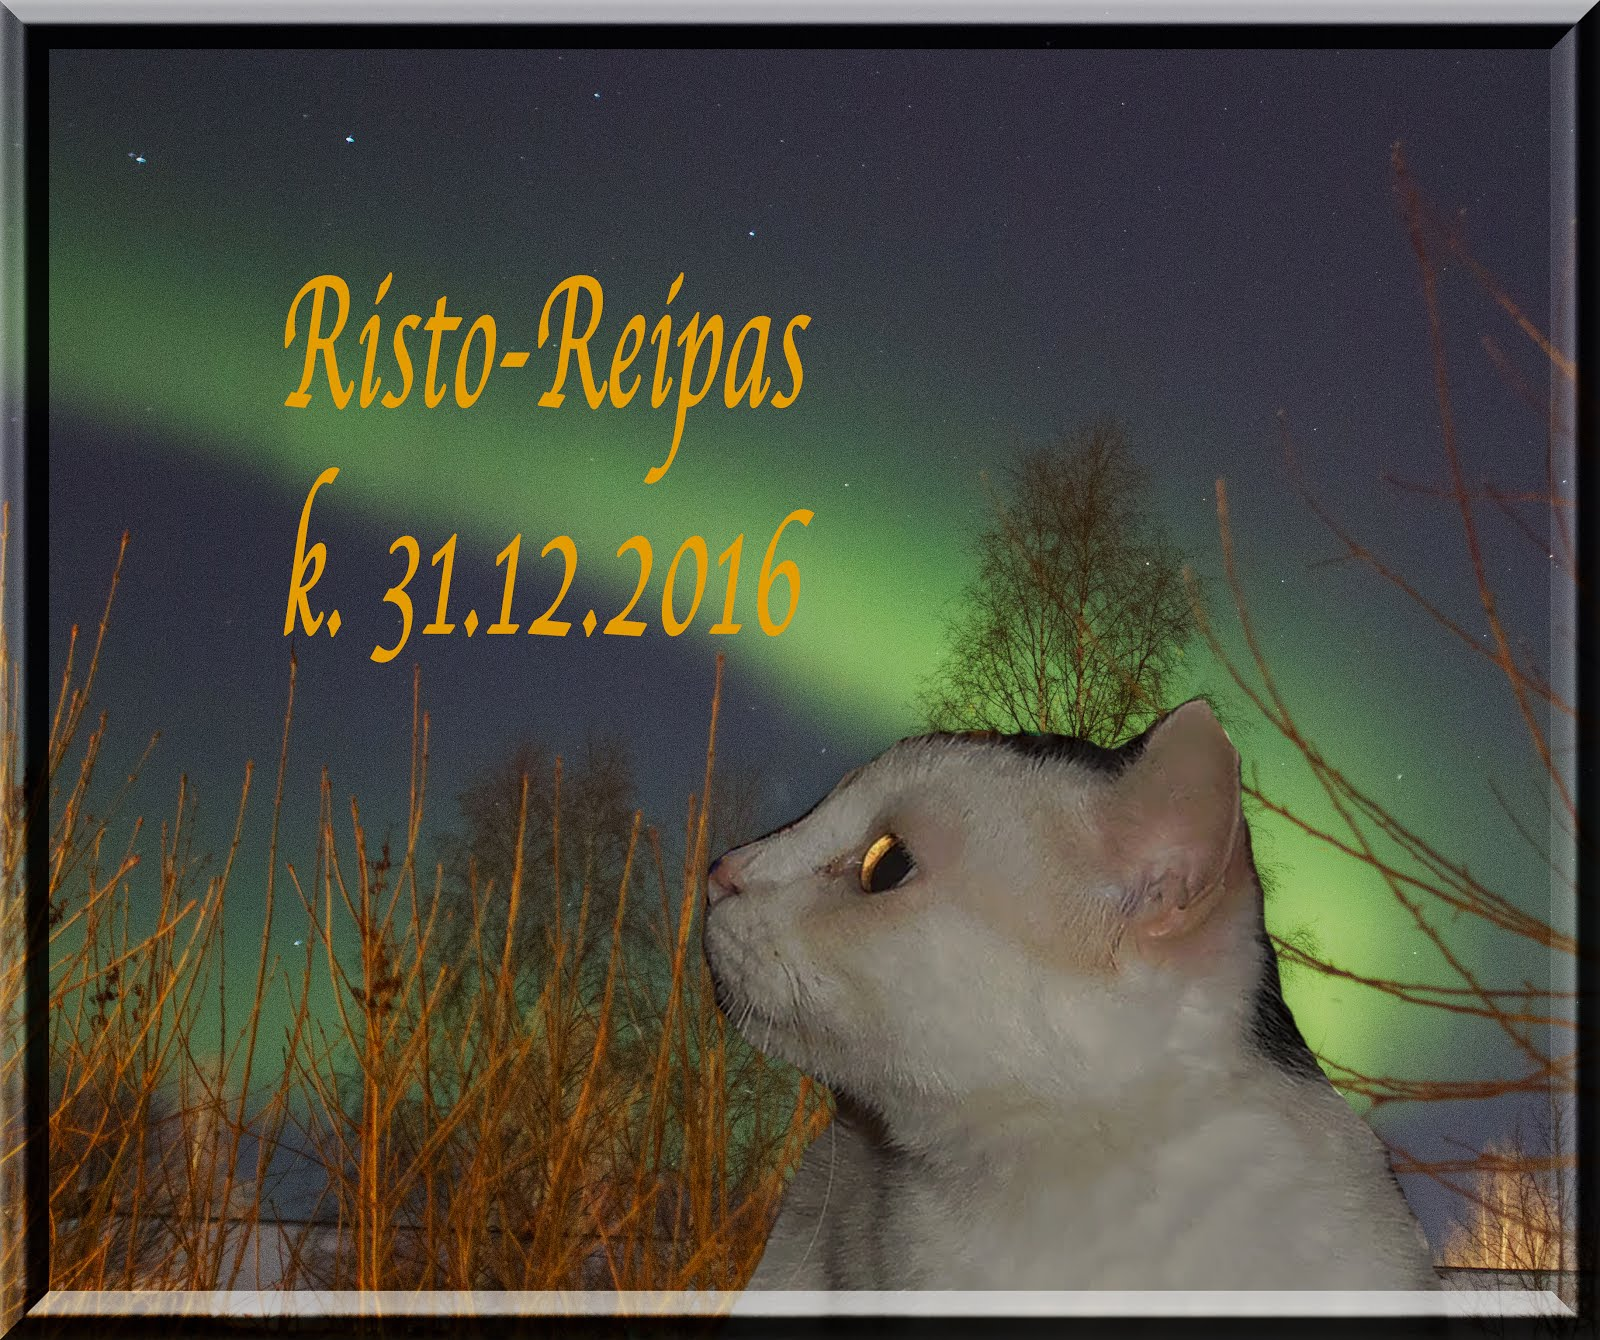 Risto-Reipas